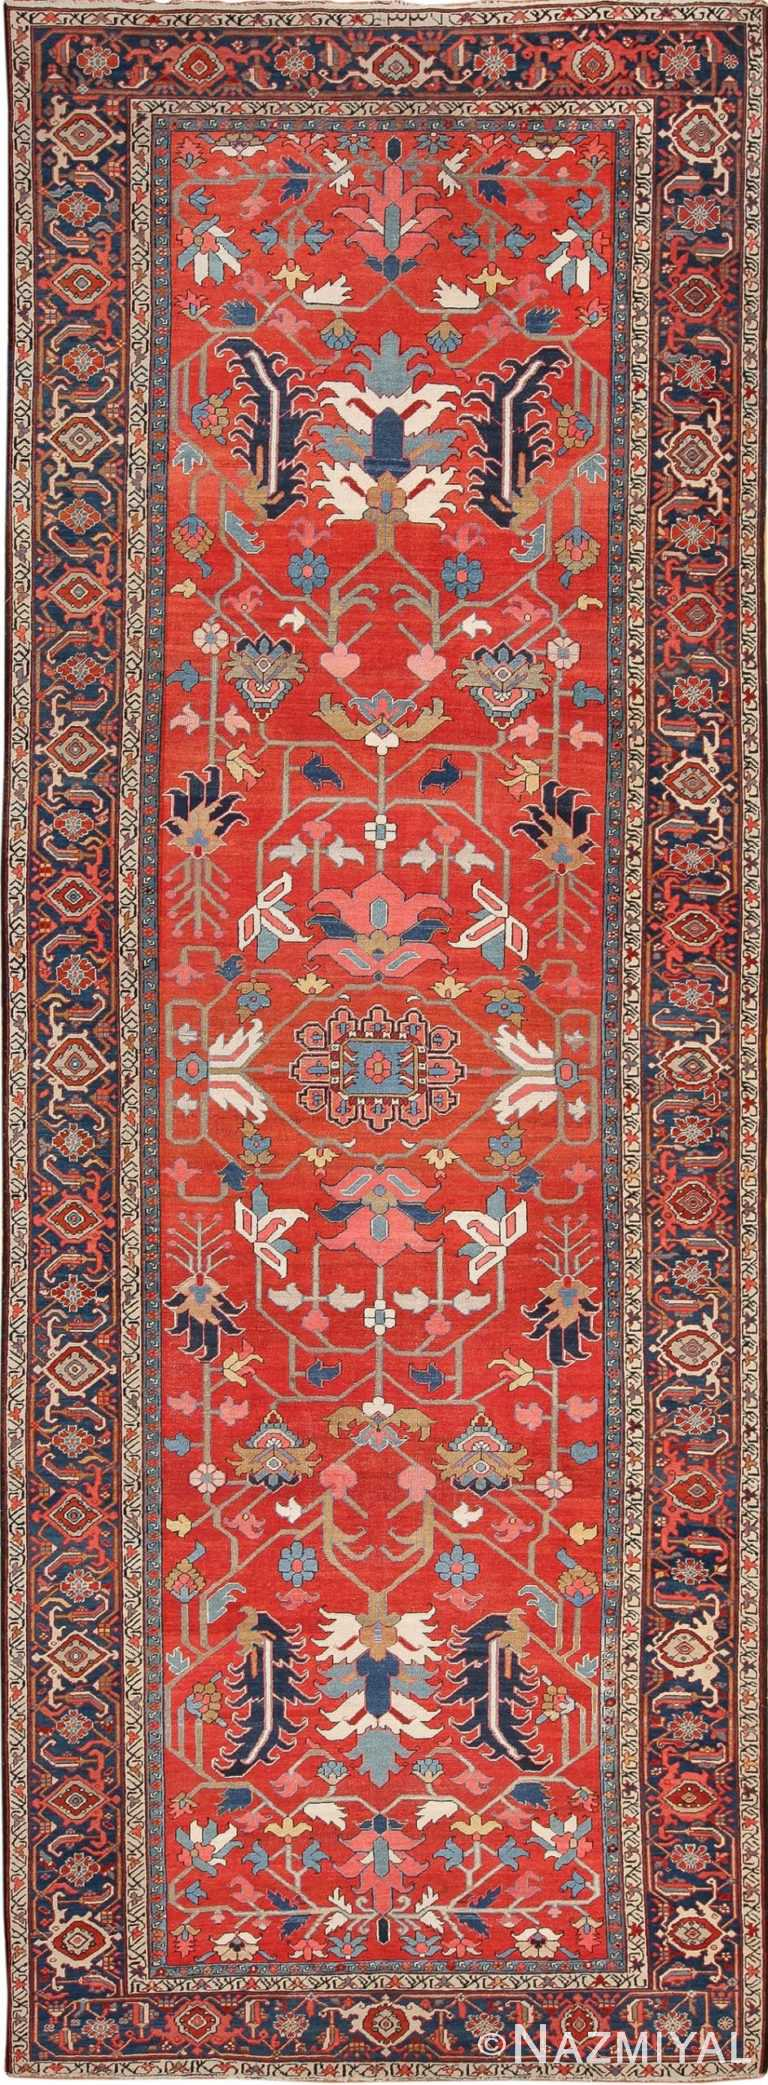 Wide Hallway Gallery Size Antique Persian Heriz Rug 49766 - Nazmyal